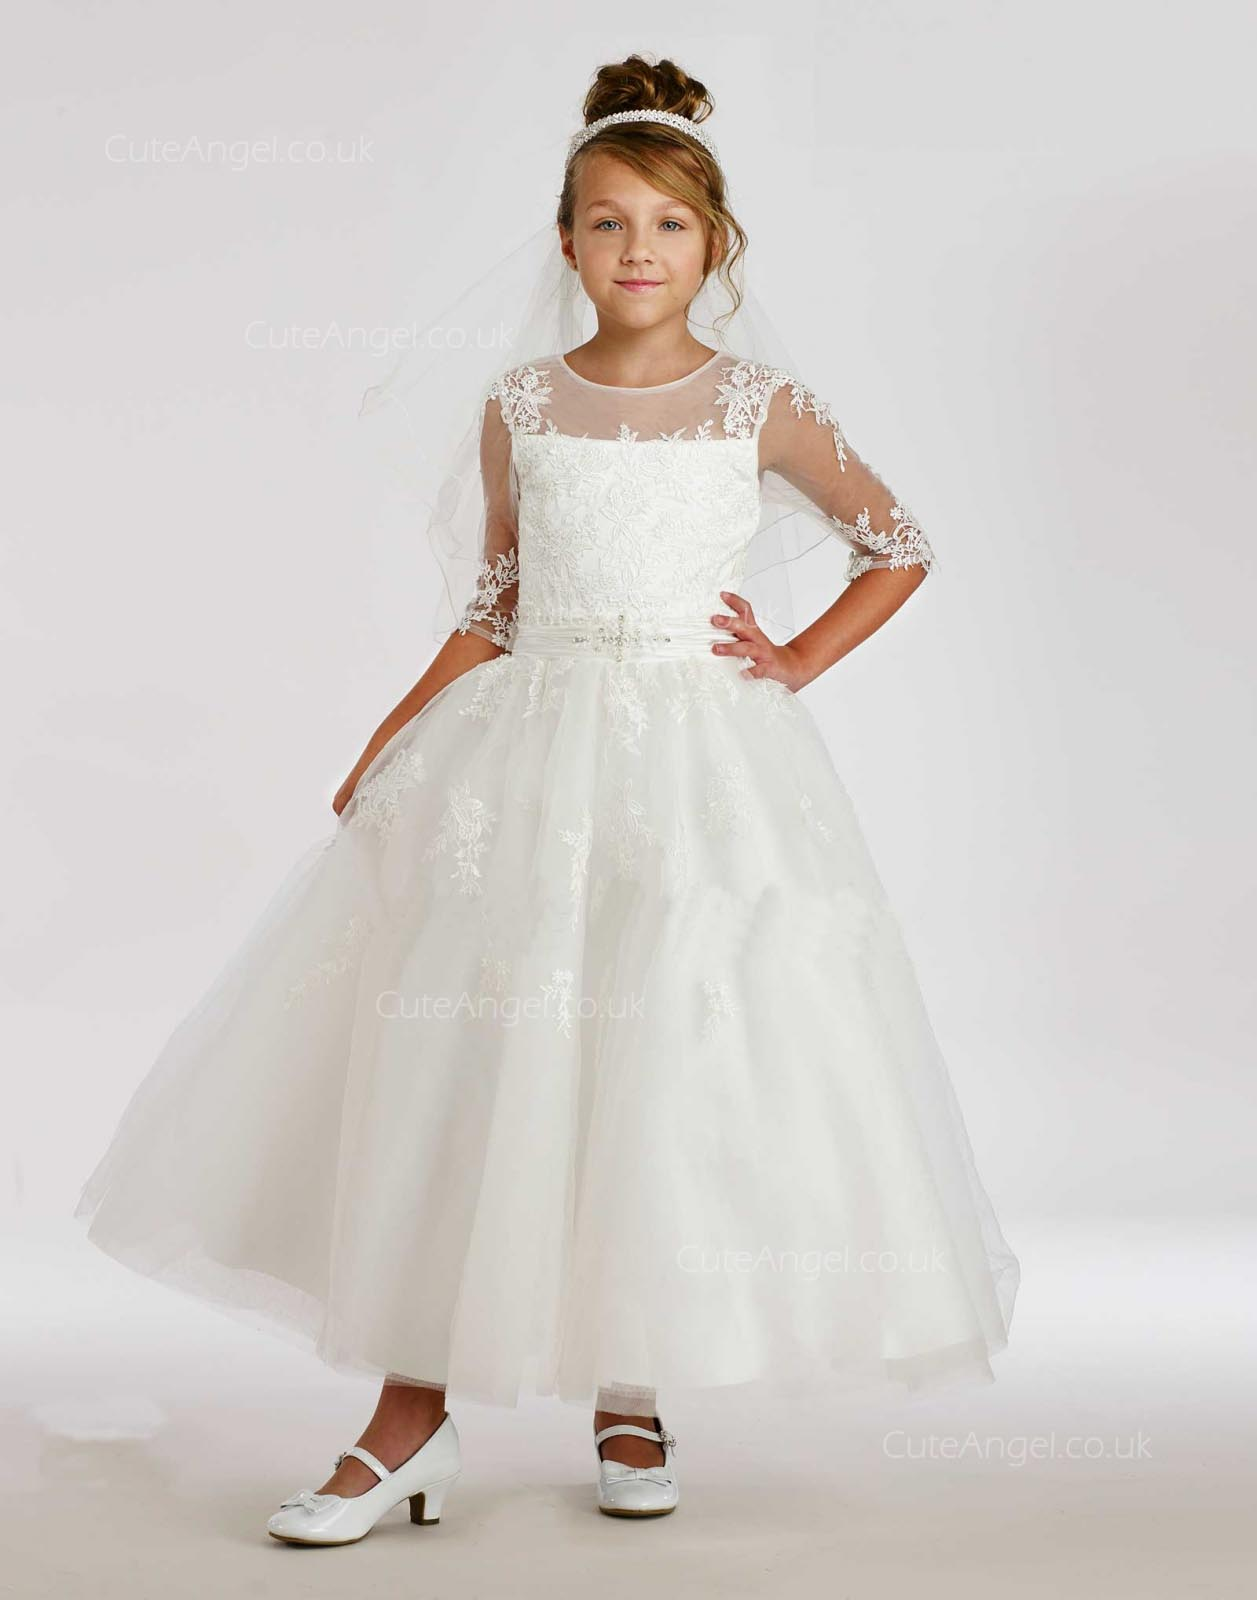 Girls Dress Style 0615318 Ivory Ankle Length Lace Round A-line Dress in Choice of Colour